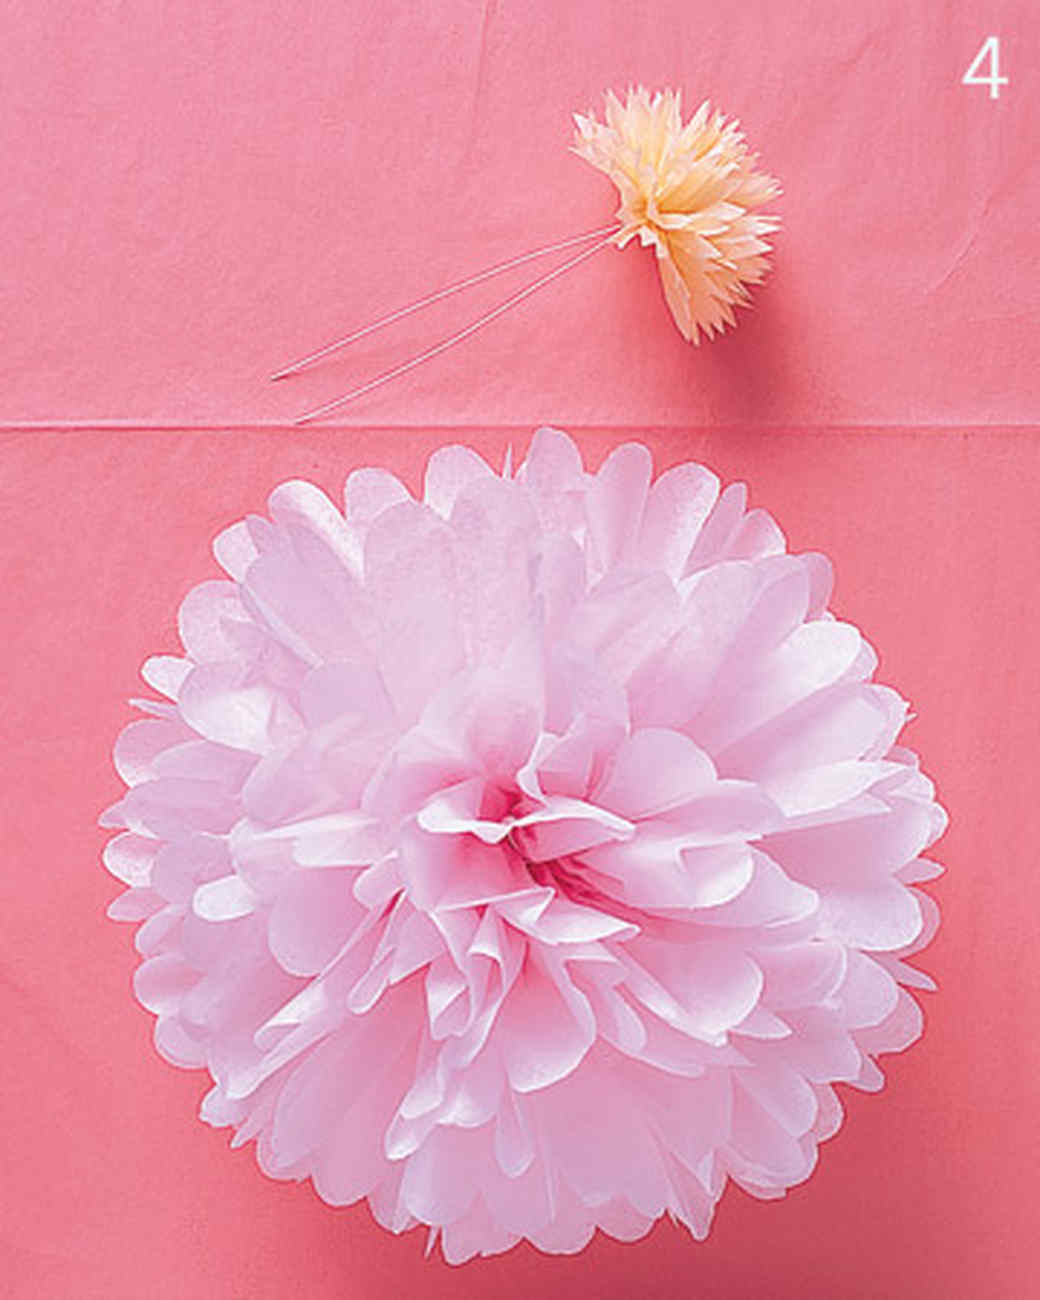 Where To Buy Tissue Paper Pom Poms Money Can T Buy Happiness Essay